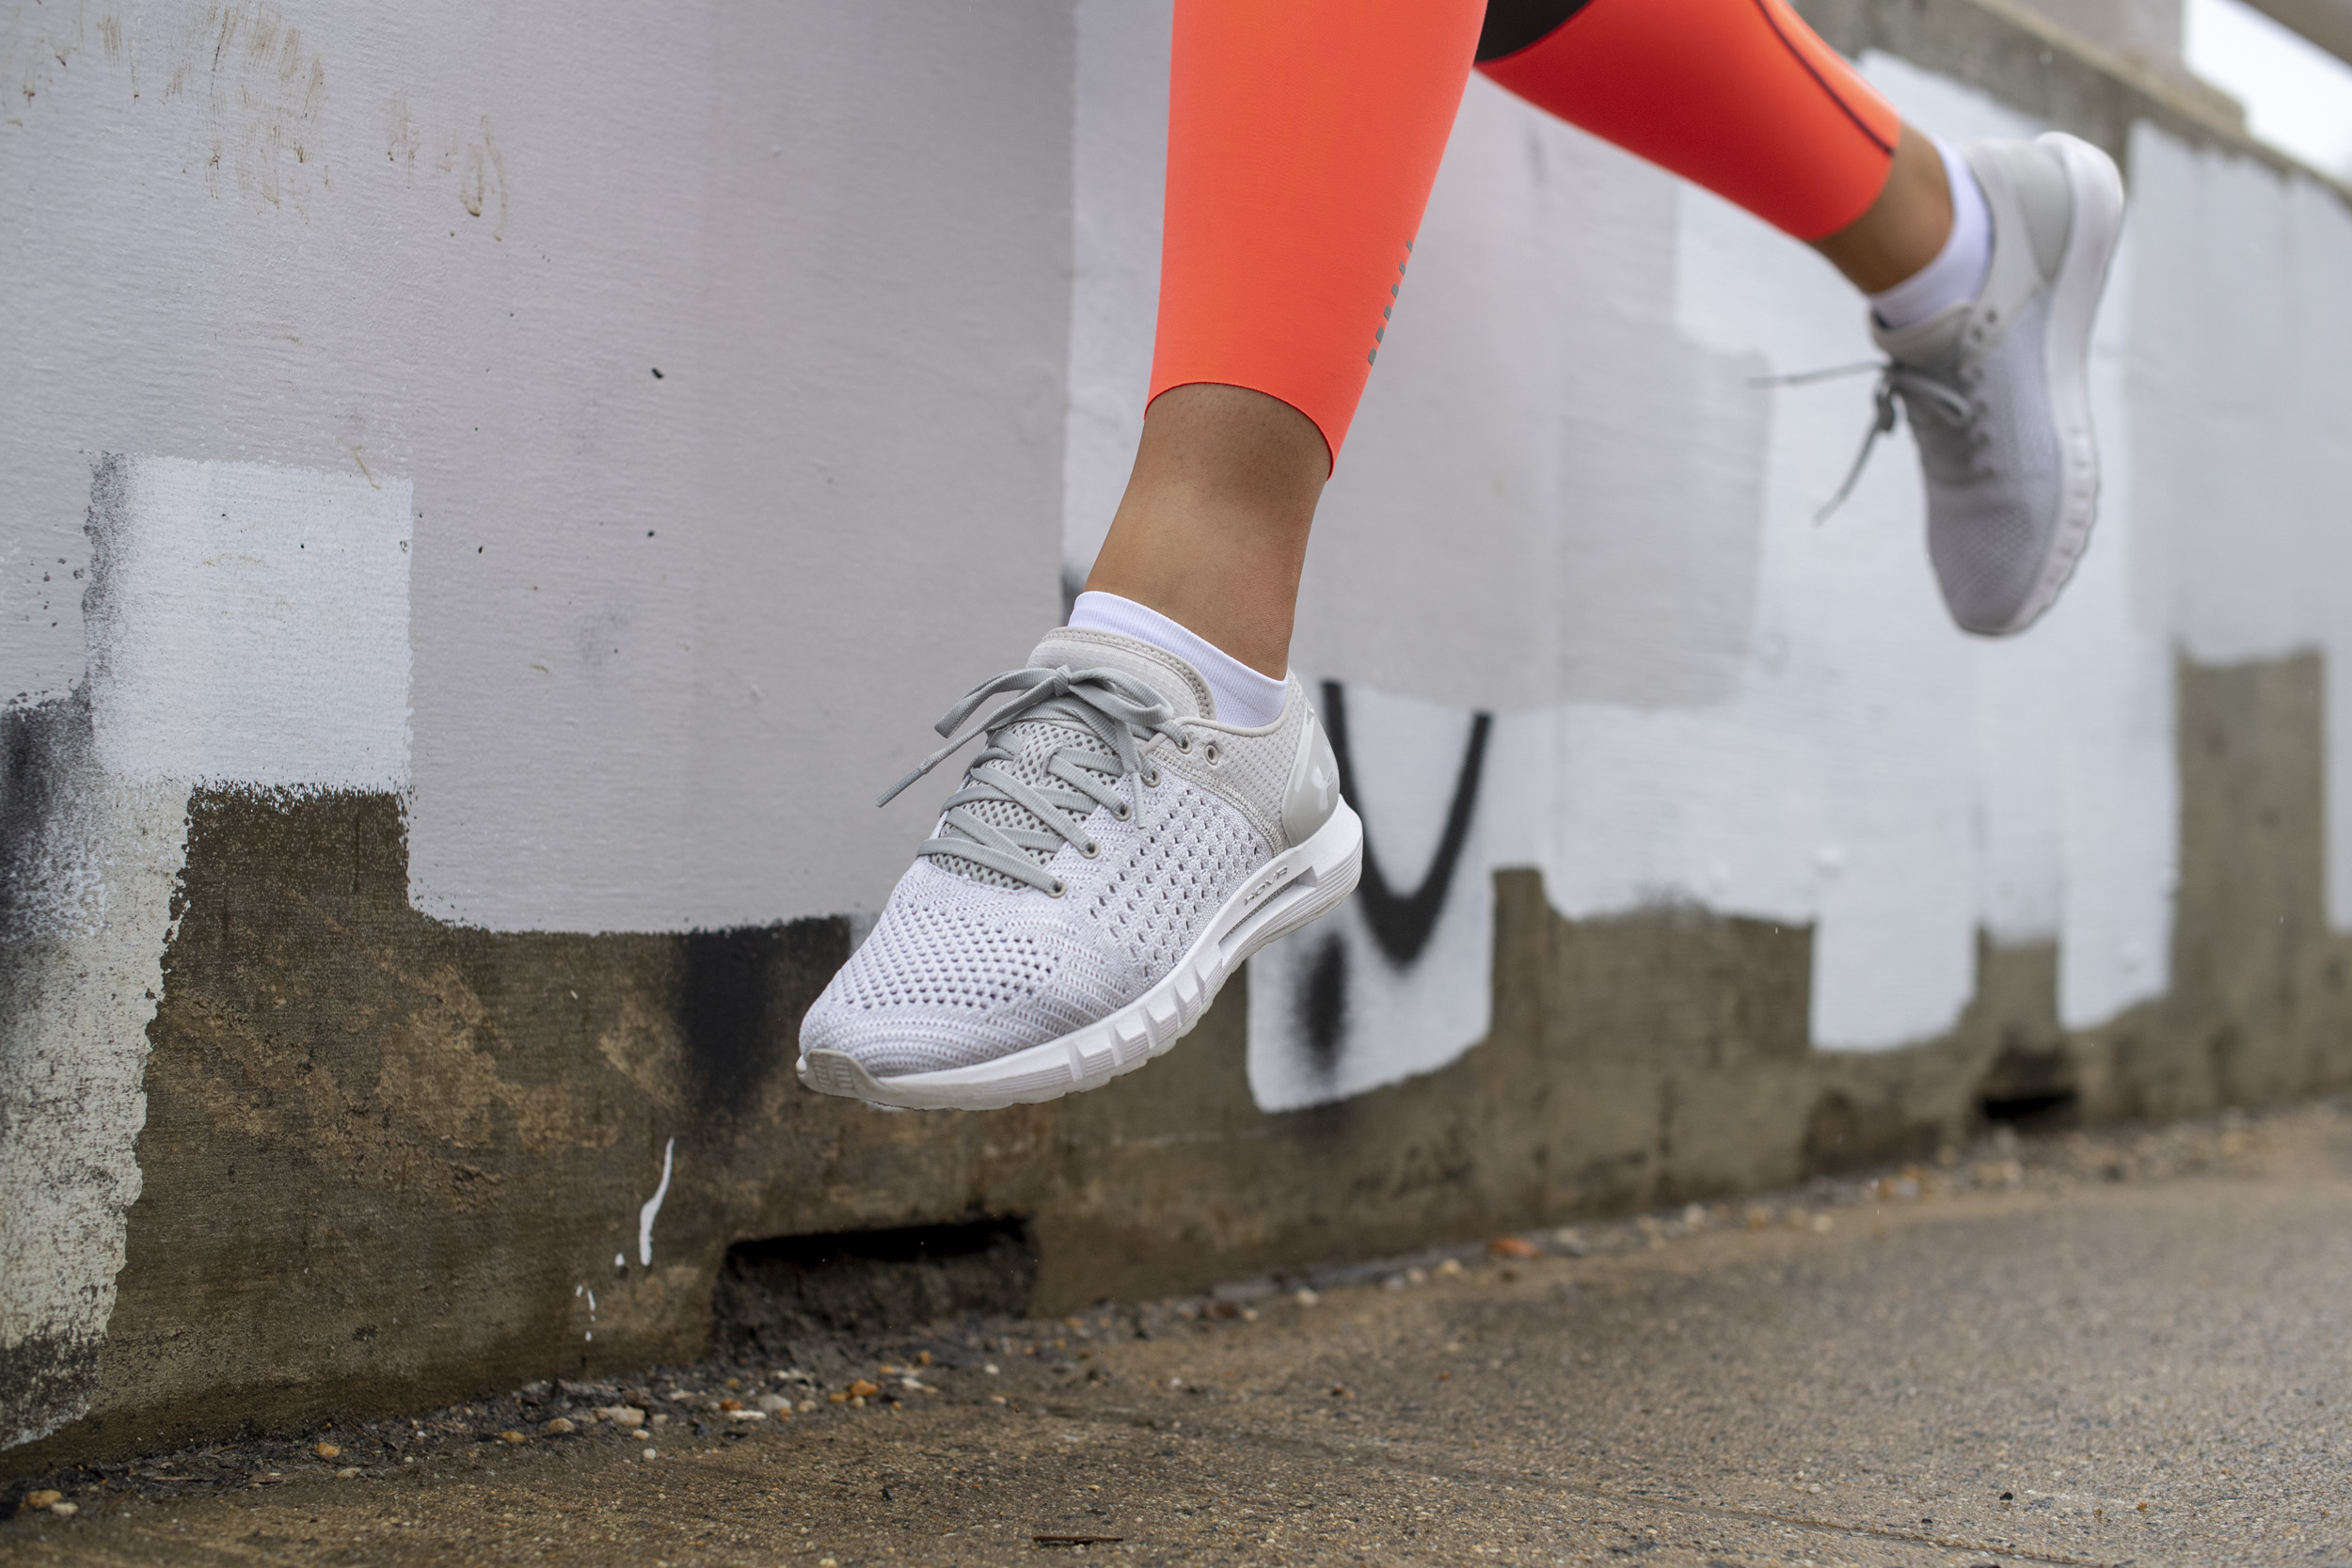 Under Armour HOVR sonic twisted knit